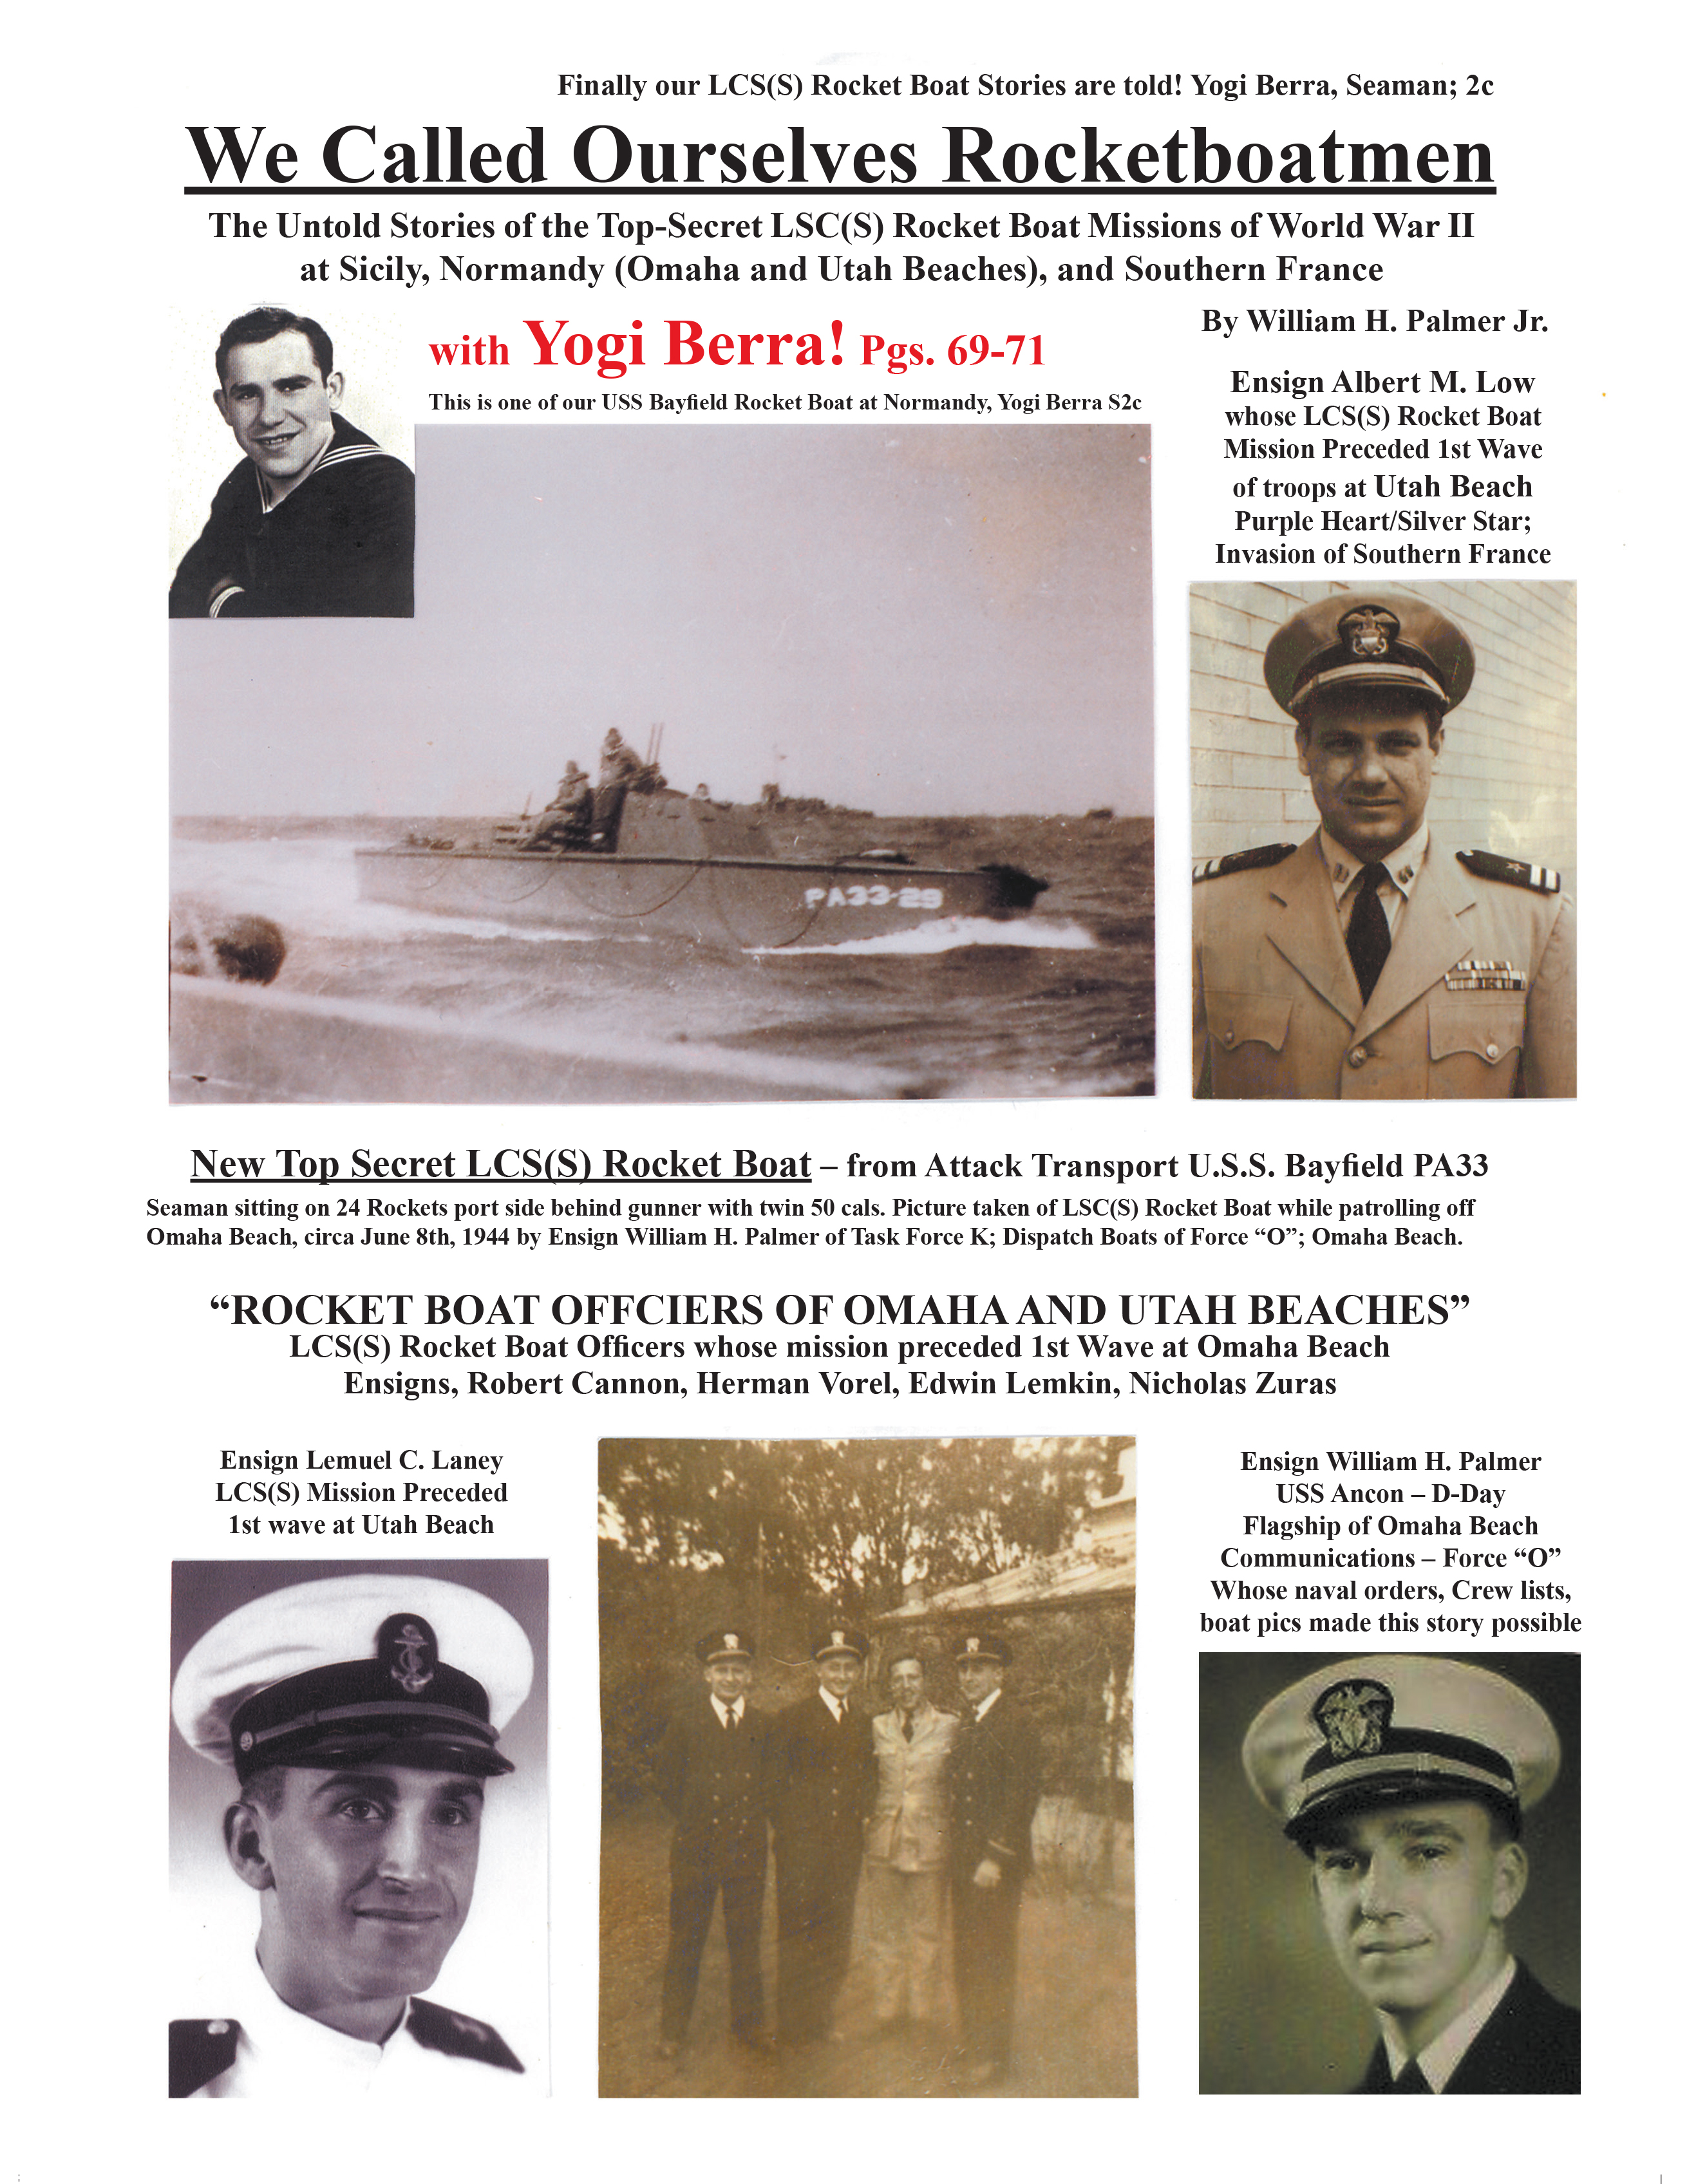 We Called Ourselves Rocketboatmen: The Untold Stories of the Top-Secret LSC(S) Rocket Boat Missions of World War II at Sicily, Normandy (Omaha and Utah Beaches), and Southern France